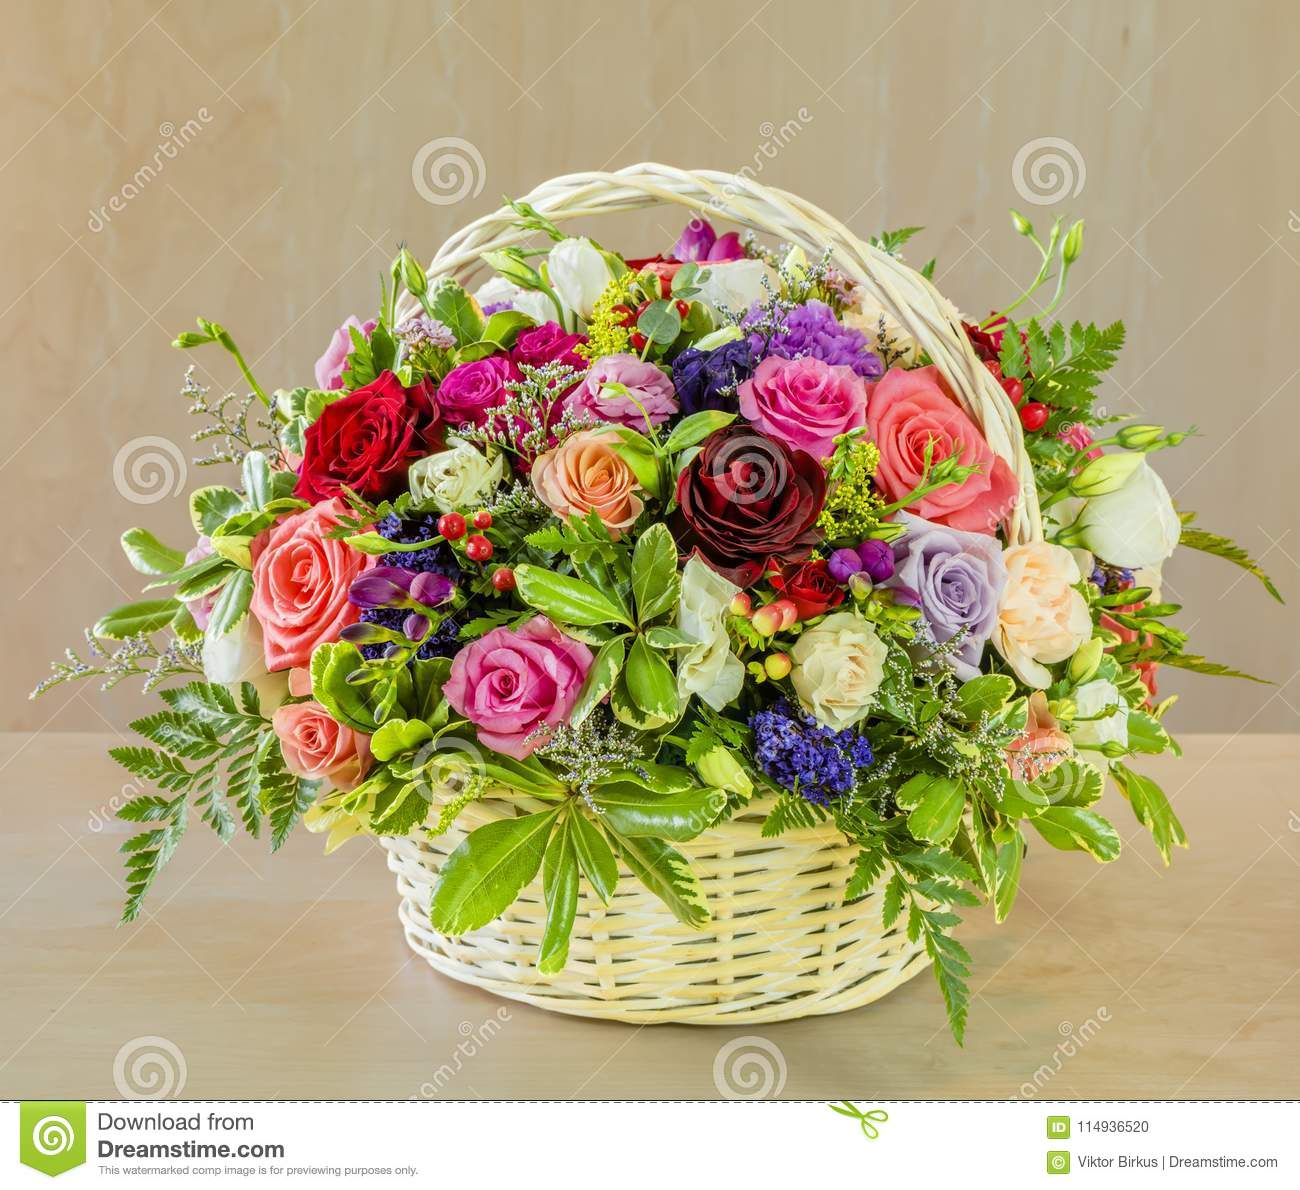 bouquet of flowers multi colored roses in a wicker basket stock rh dreamstime com